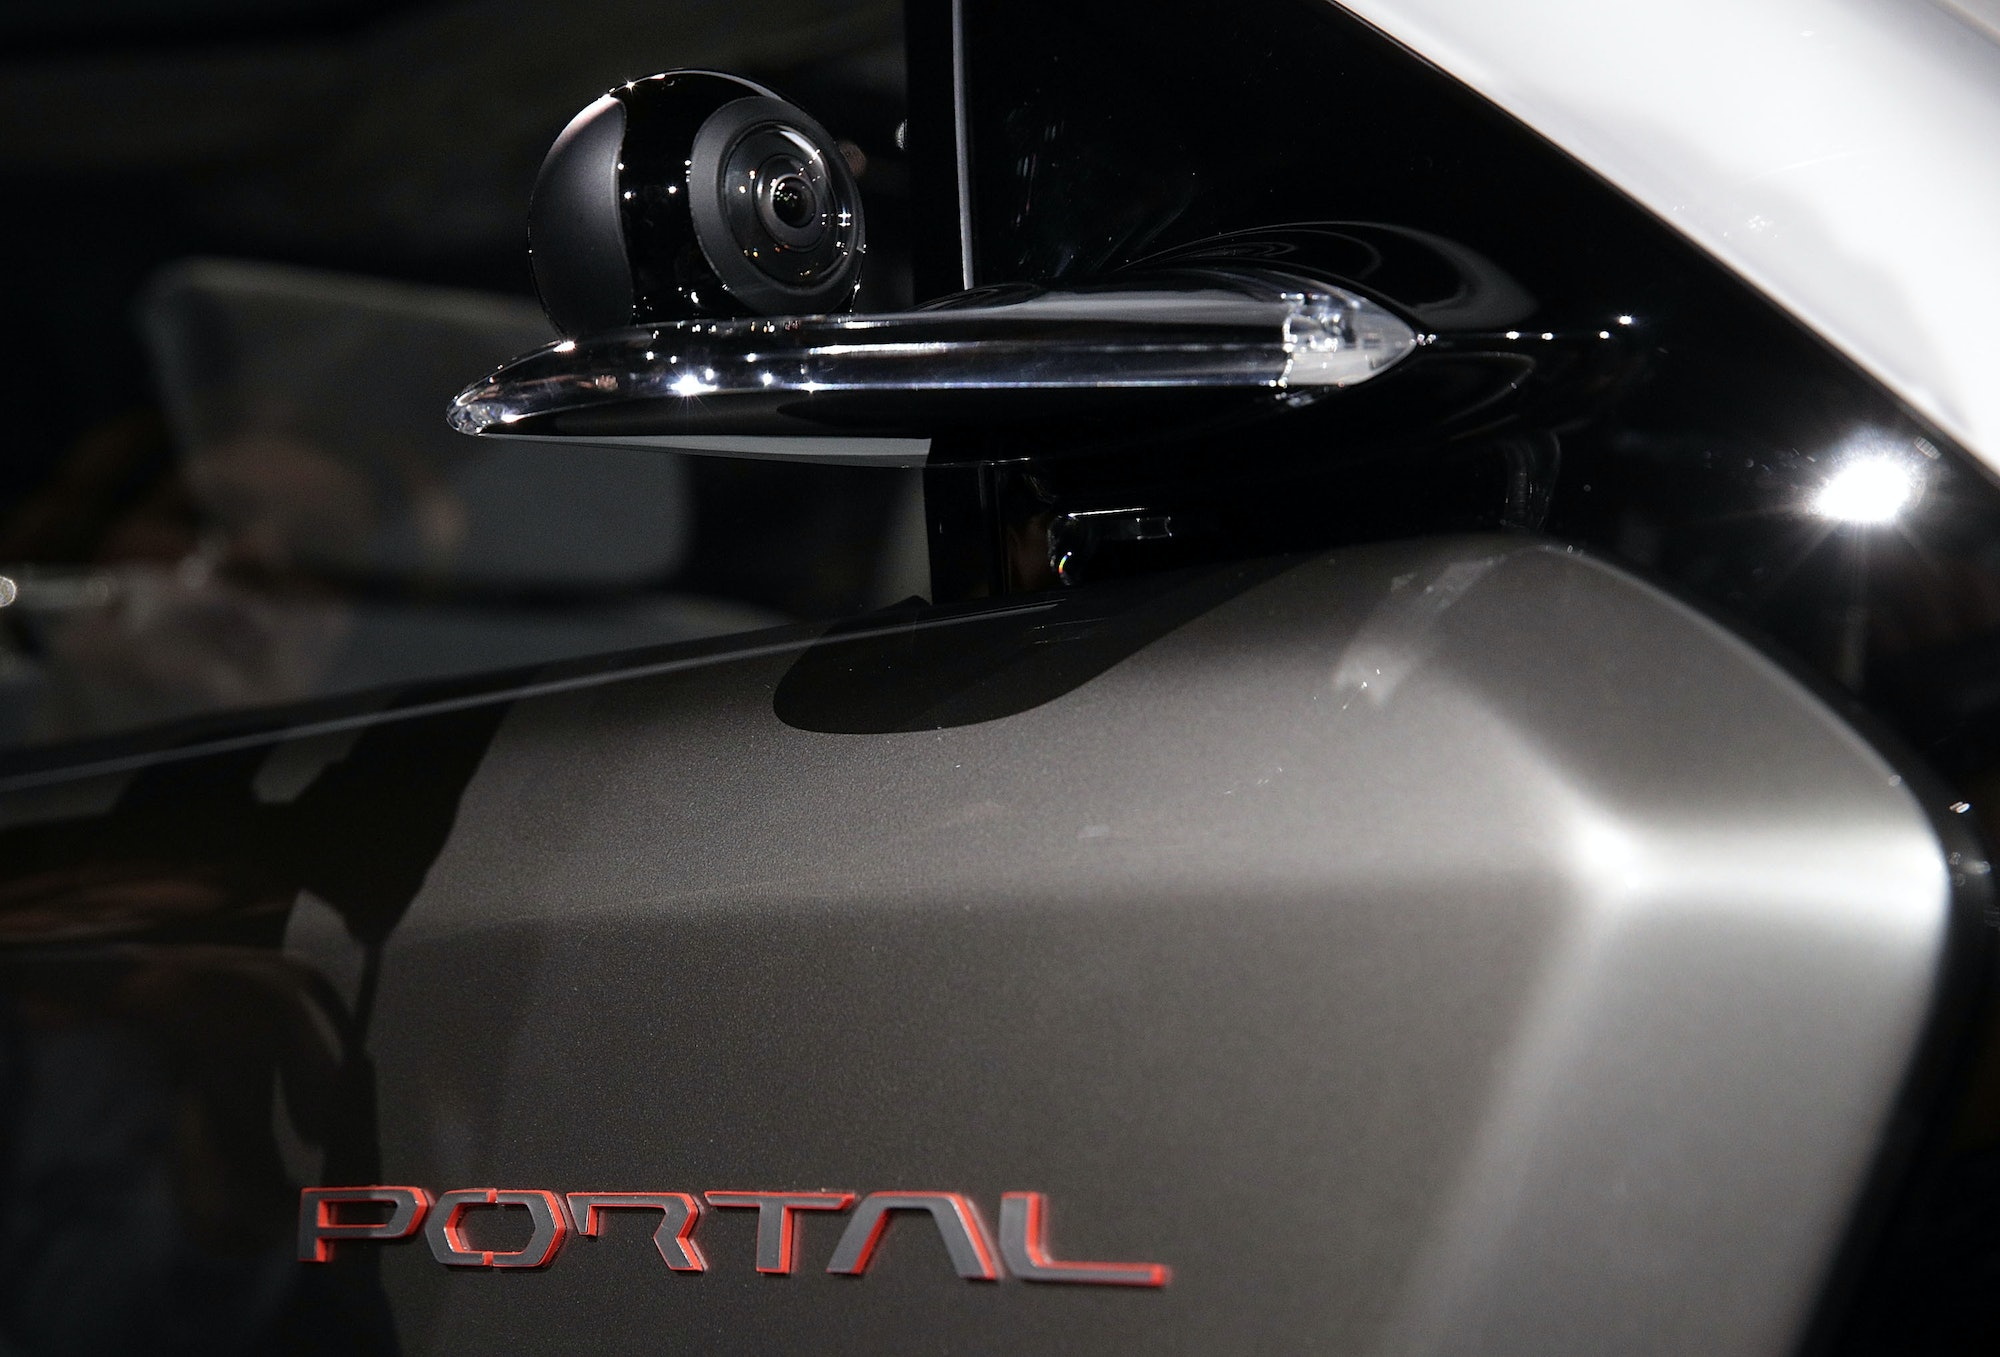 The side mirror is replaced with a camera on the Chrysler Portal electric concept minivan at CES 2017.